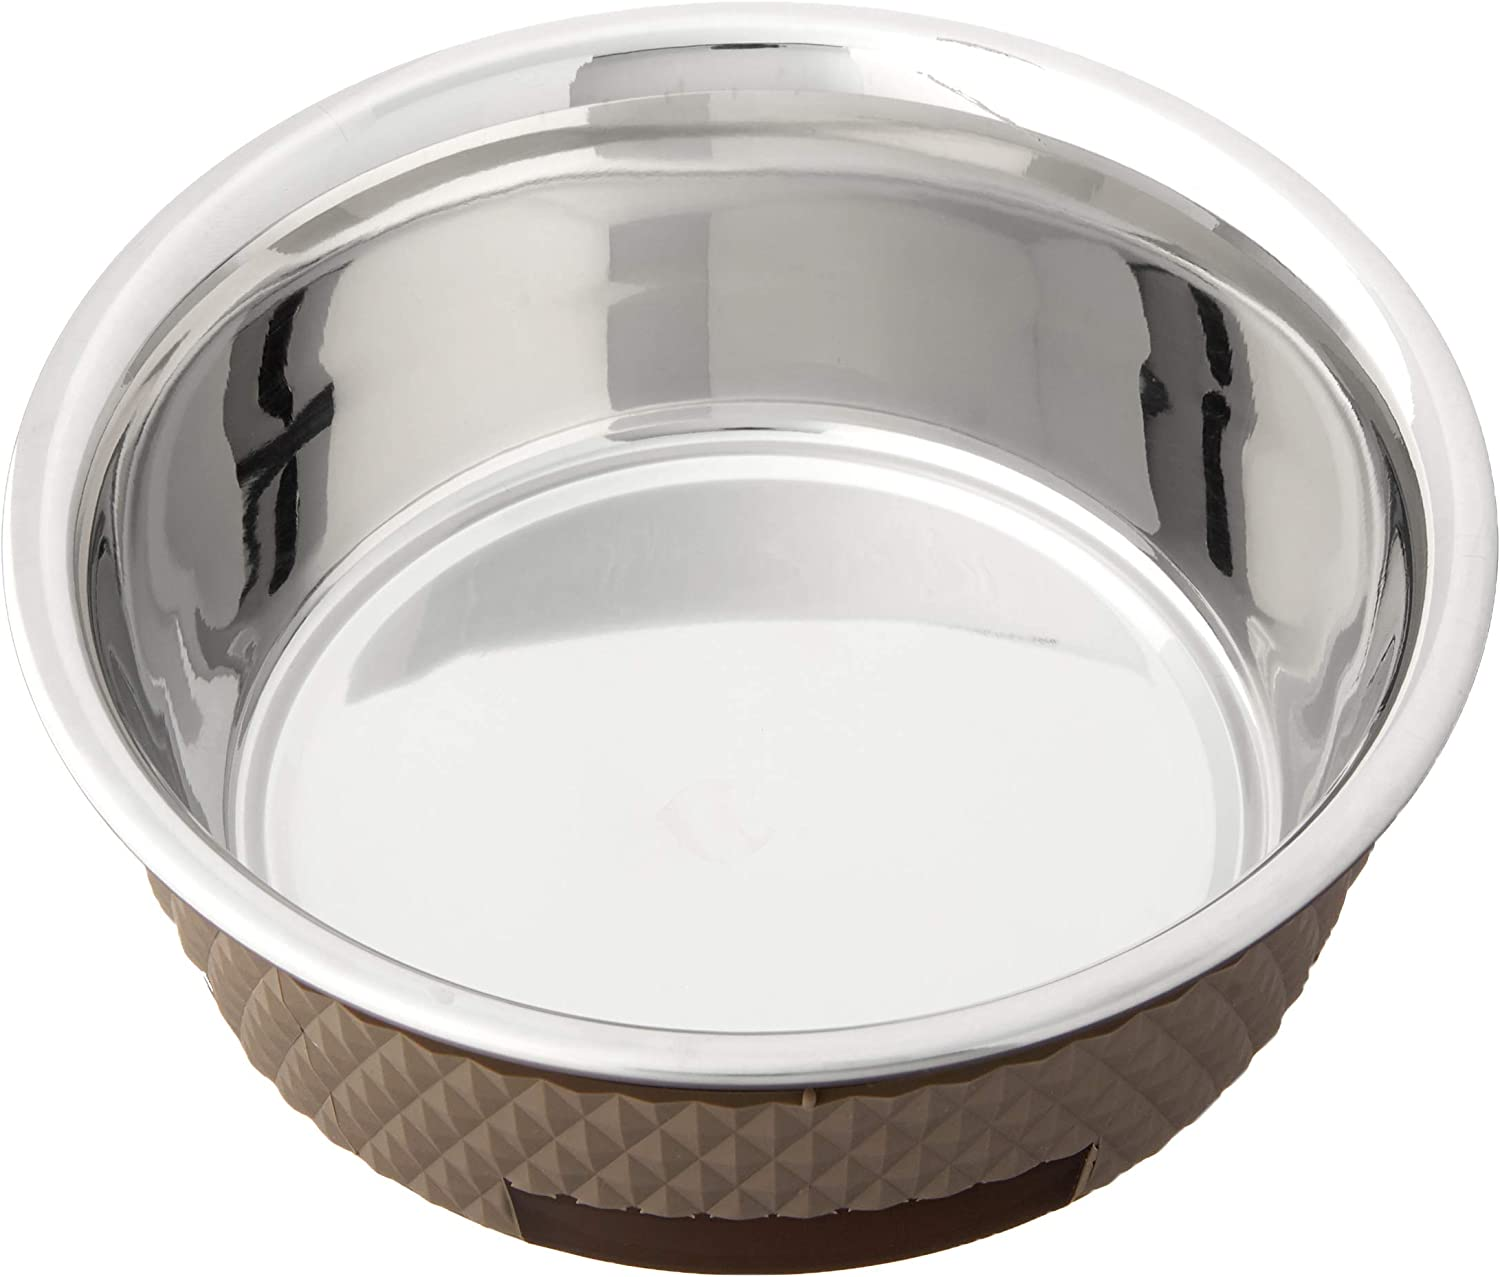 PetRageous 16016 Kona Stainless-Steel Non-Slip Dishwasher Safe Dog Bowl 3.75-Cup 6.75-Inch Diameter 2.5-Inch Tall for Medium and Large Dogs and Cats 30-Ounce, Taupe